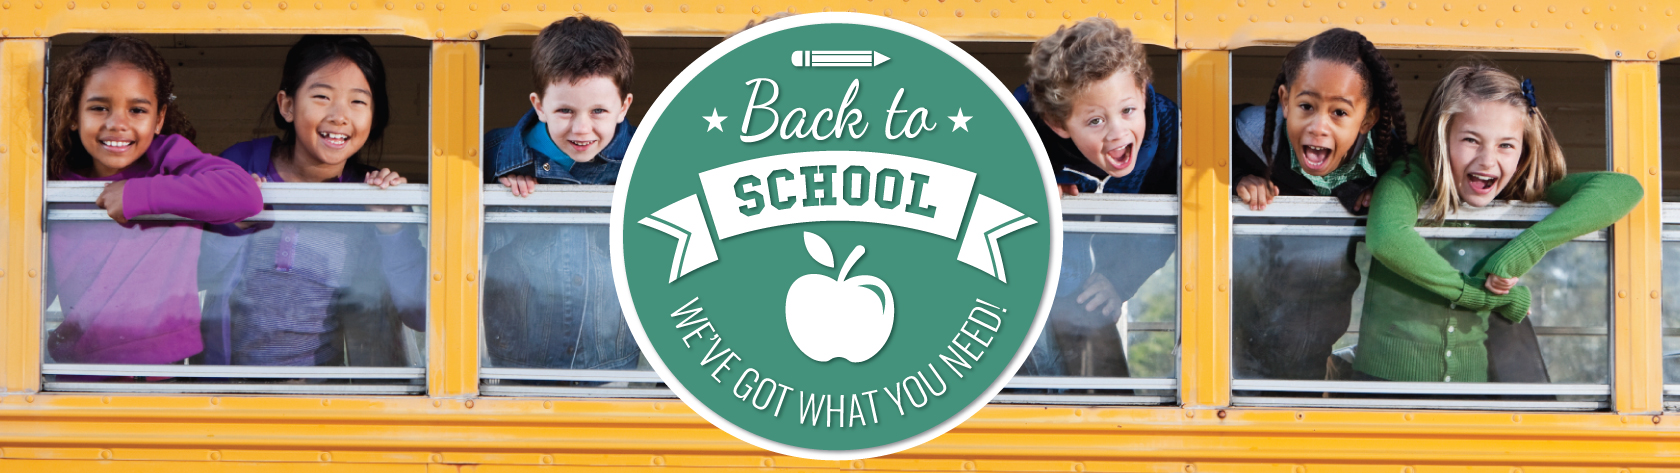 AGM-Back-to-School-Web-Slider-082015-FINAL